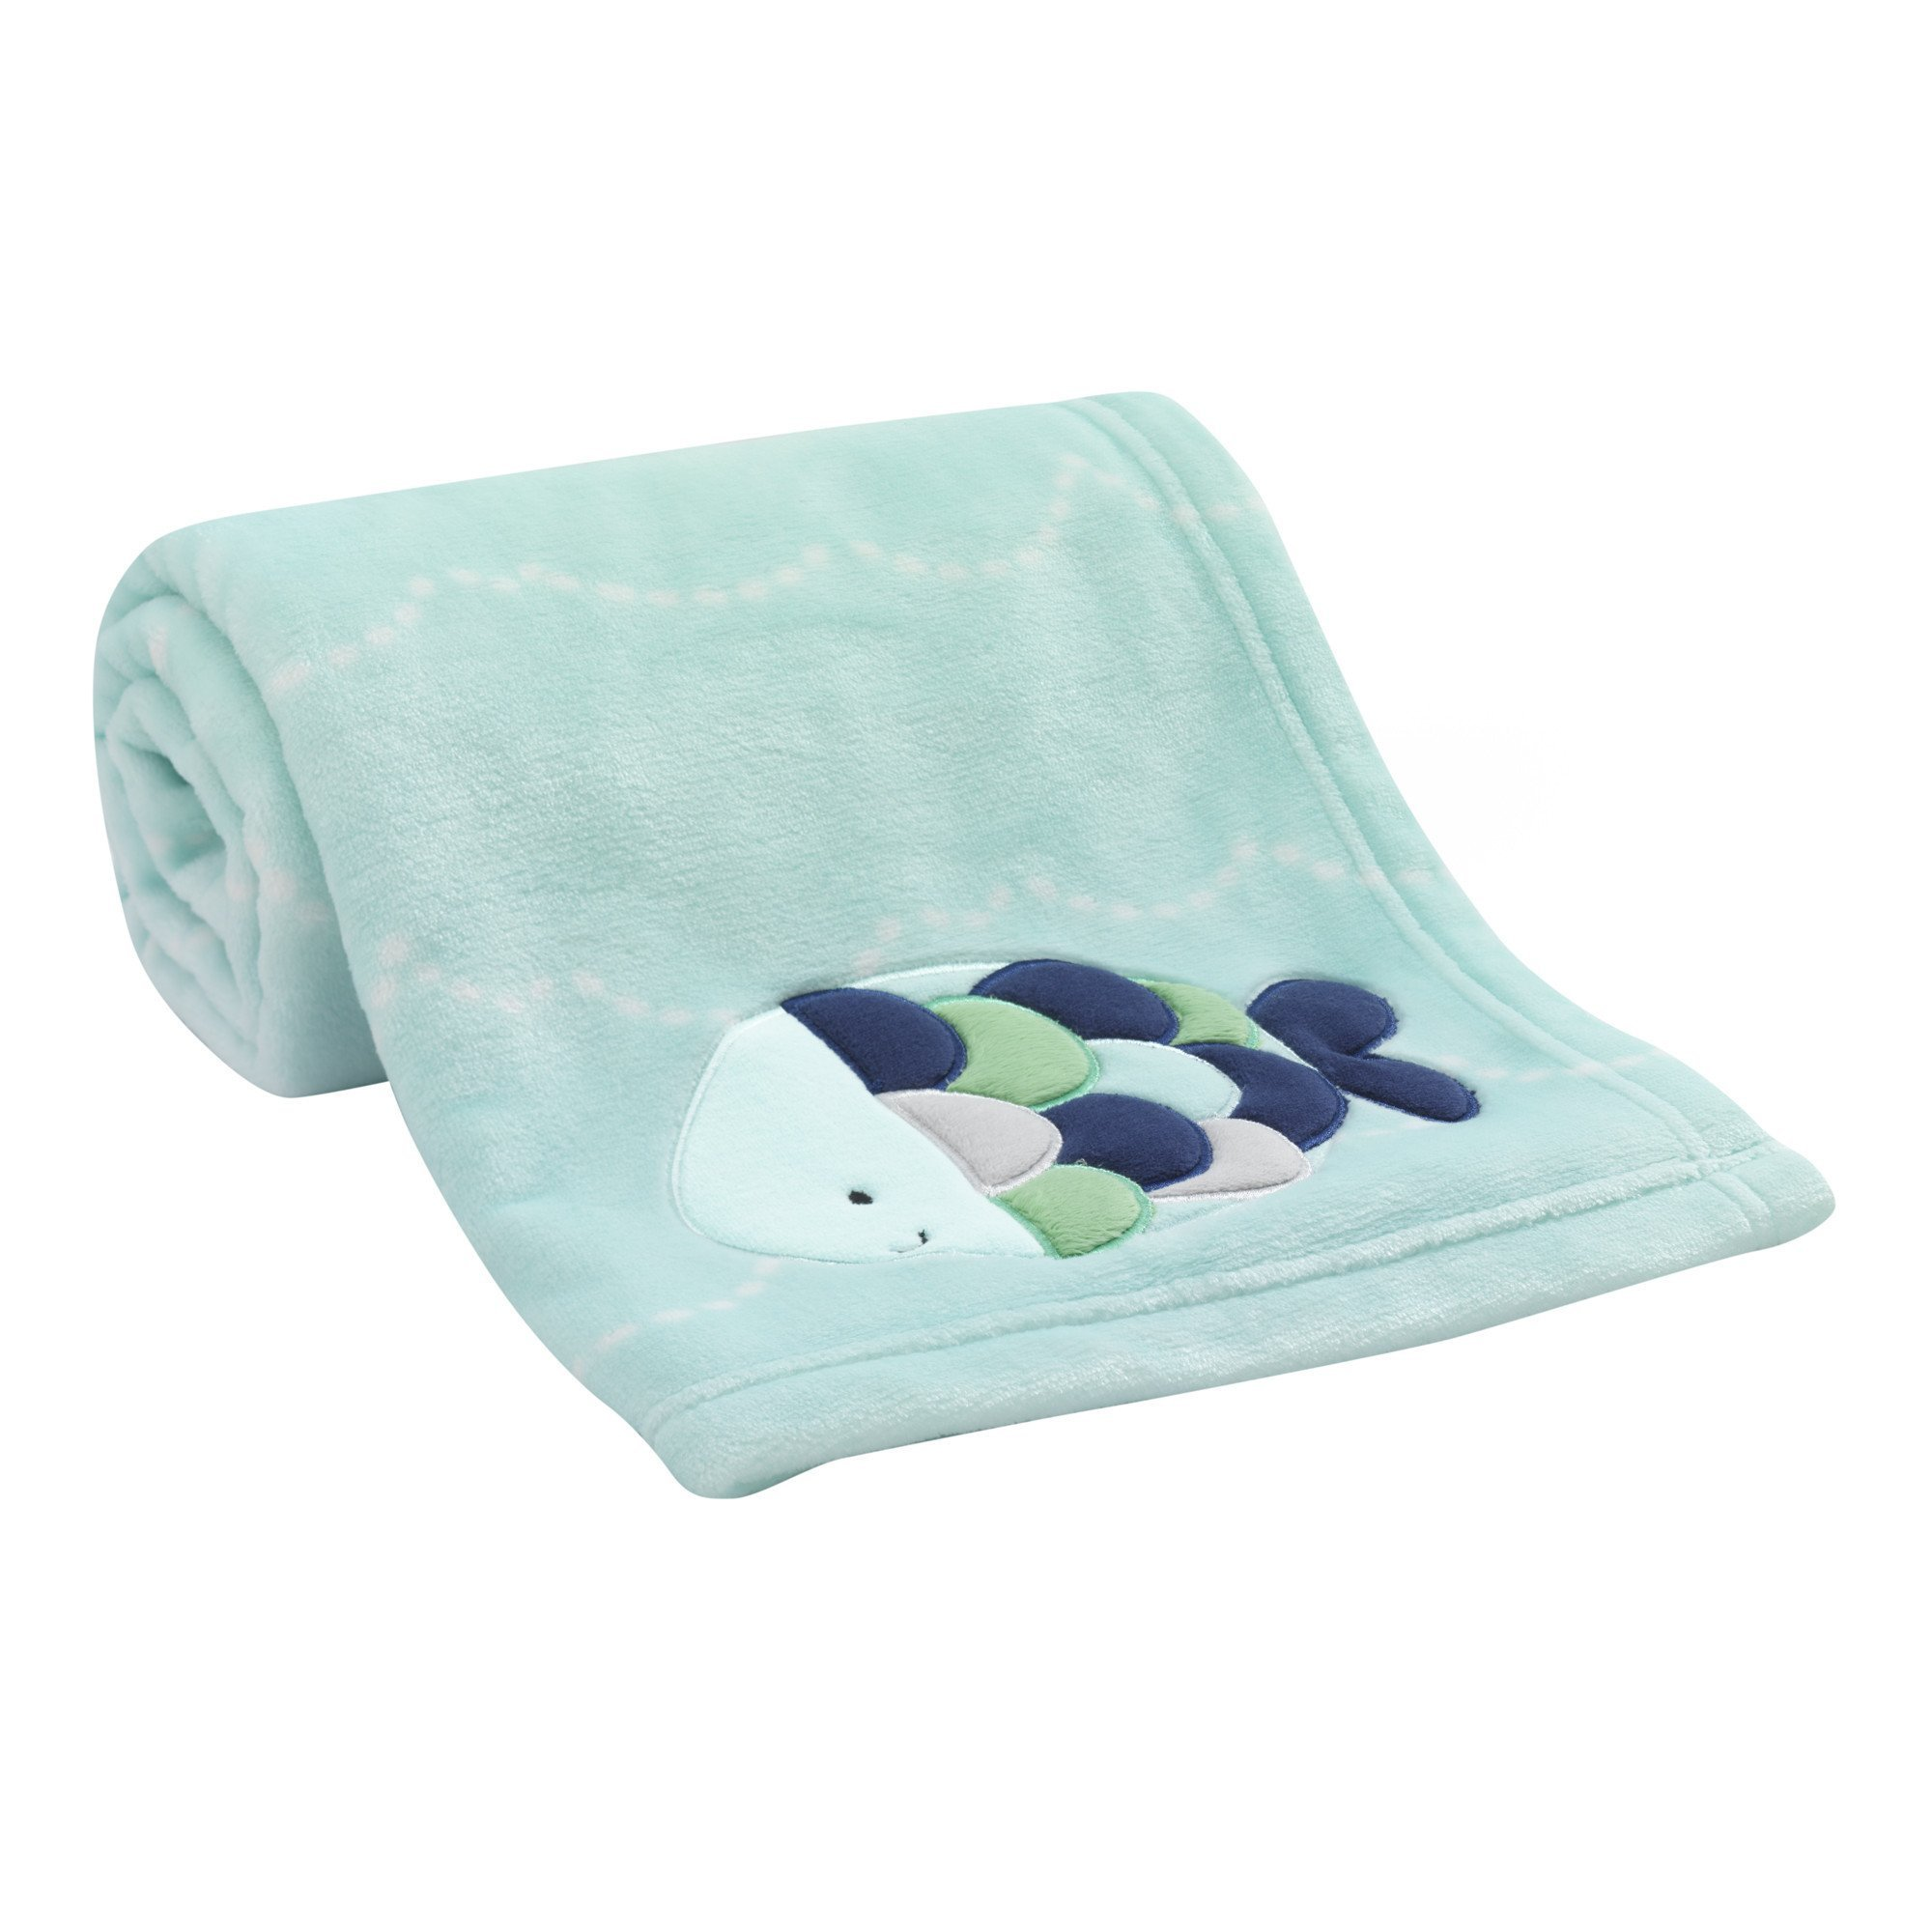 Lambs & Ivy Oceania Blue Turquoise Coral Fleece Baby Blanket with Fish by Lambs & Ivy